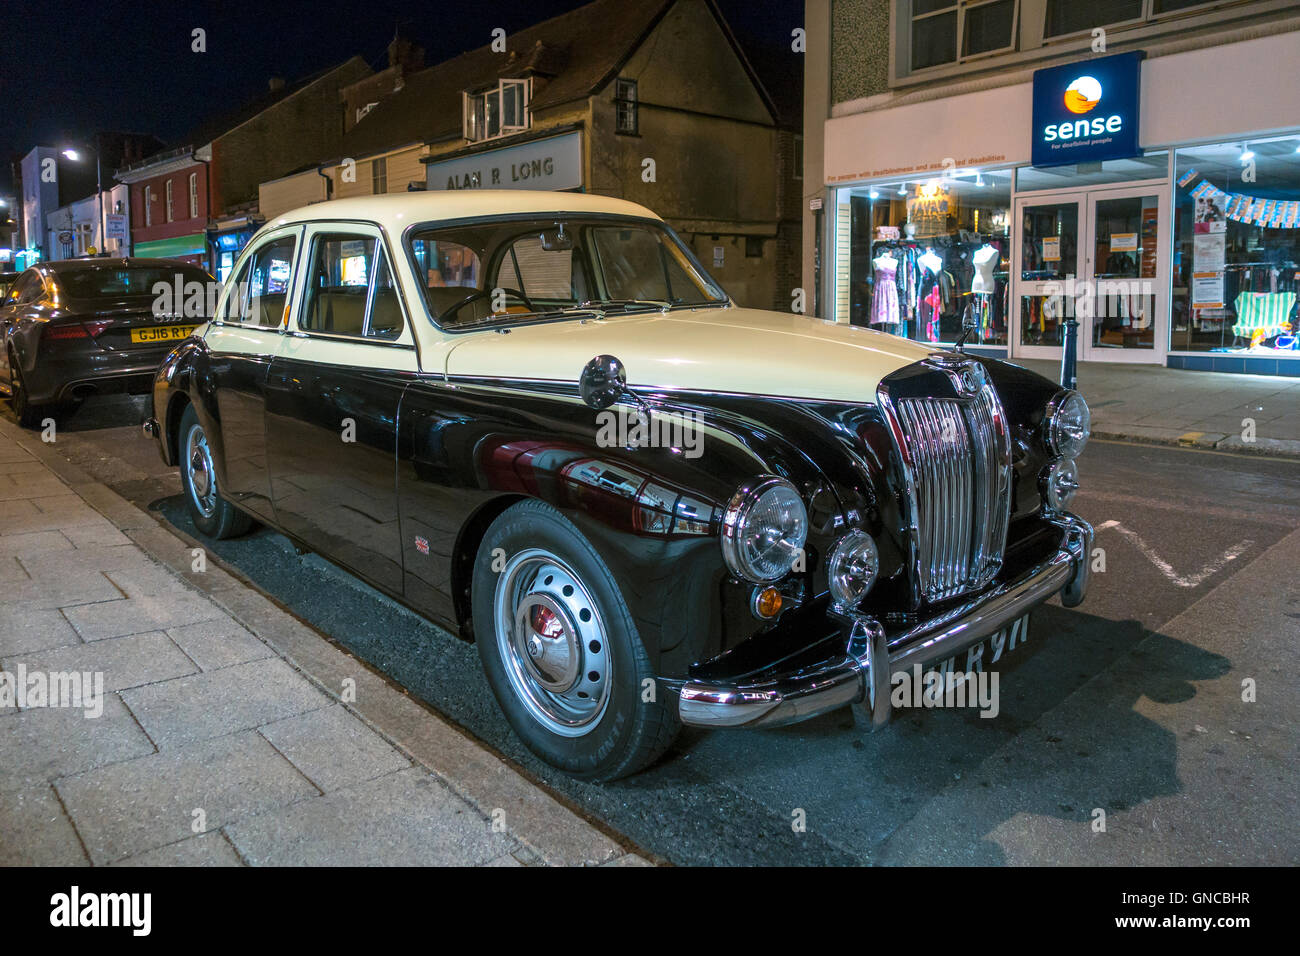 Vintage MG Magnette Saloon Car Two Tone - Stock Image